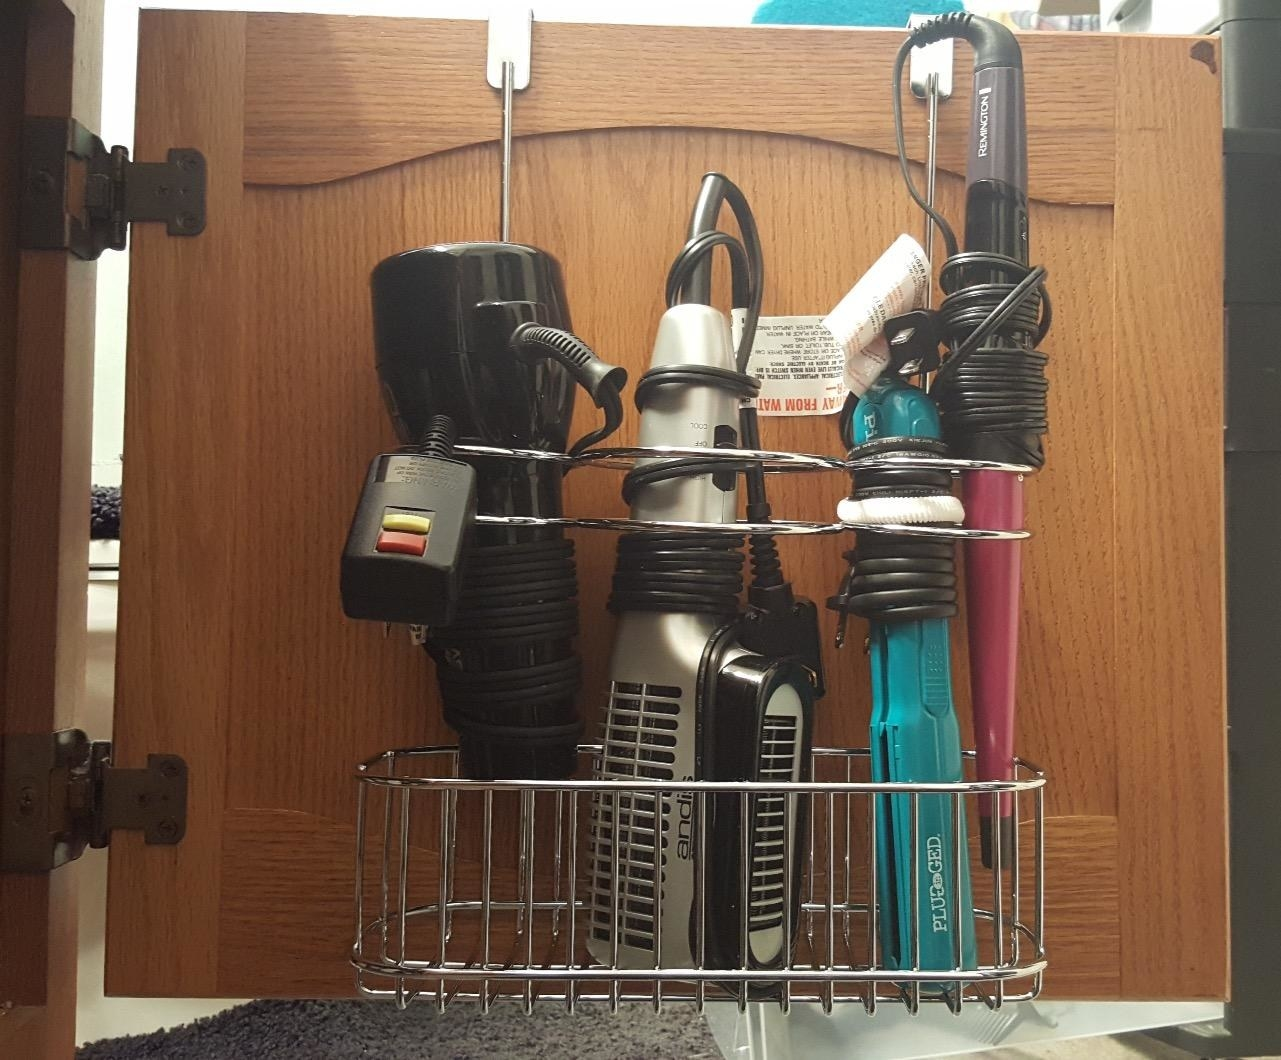 A reviewer photo of a hair tool organizer attached to the inside of a cabinet door holding a blow dryer, hot air brush, a hair straightener, and a curling wand